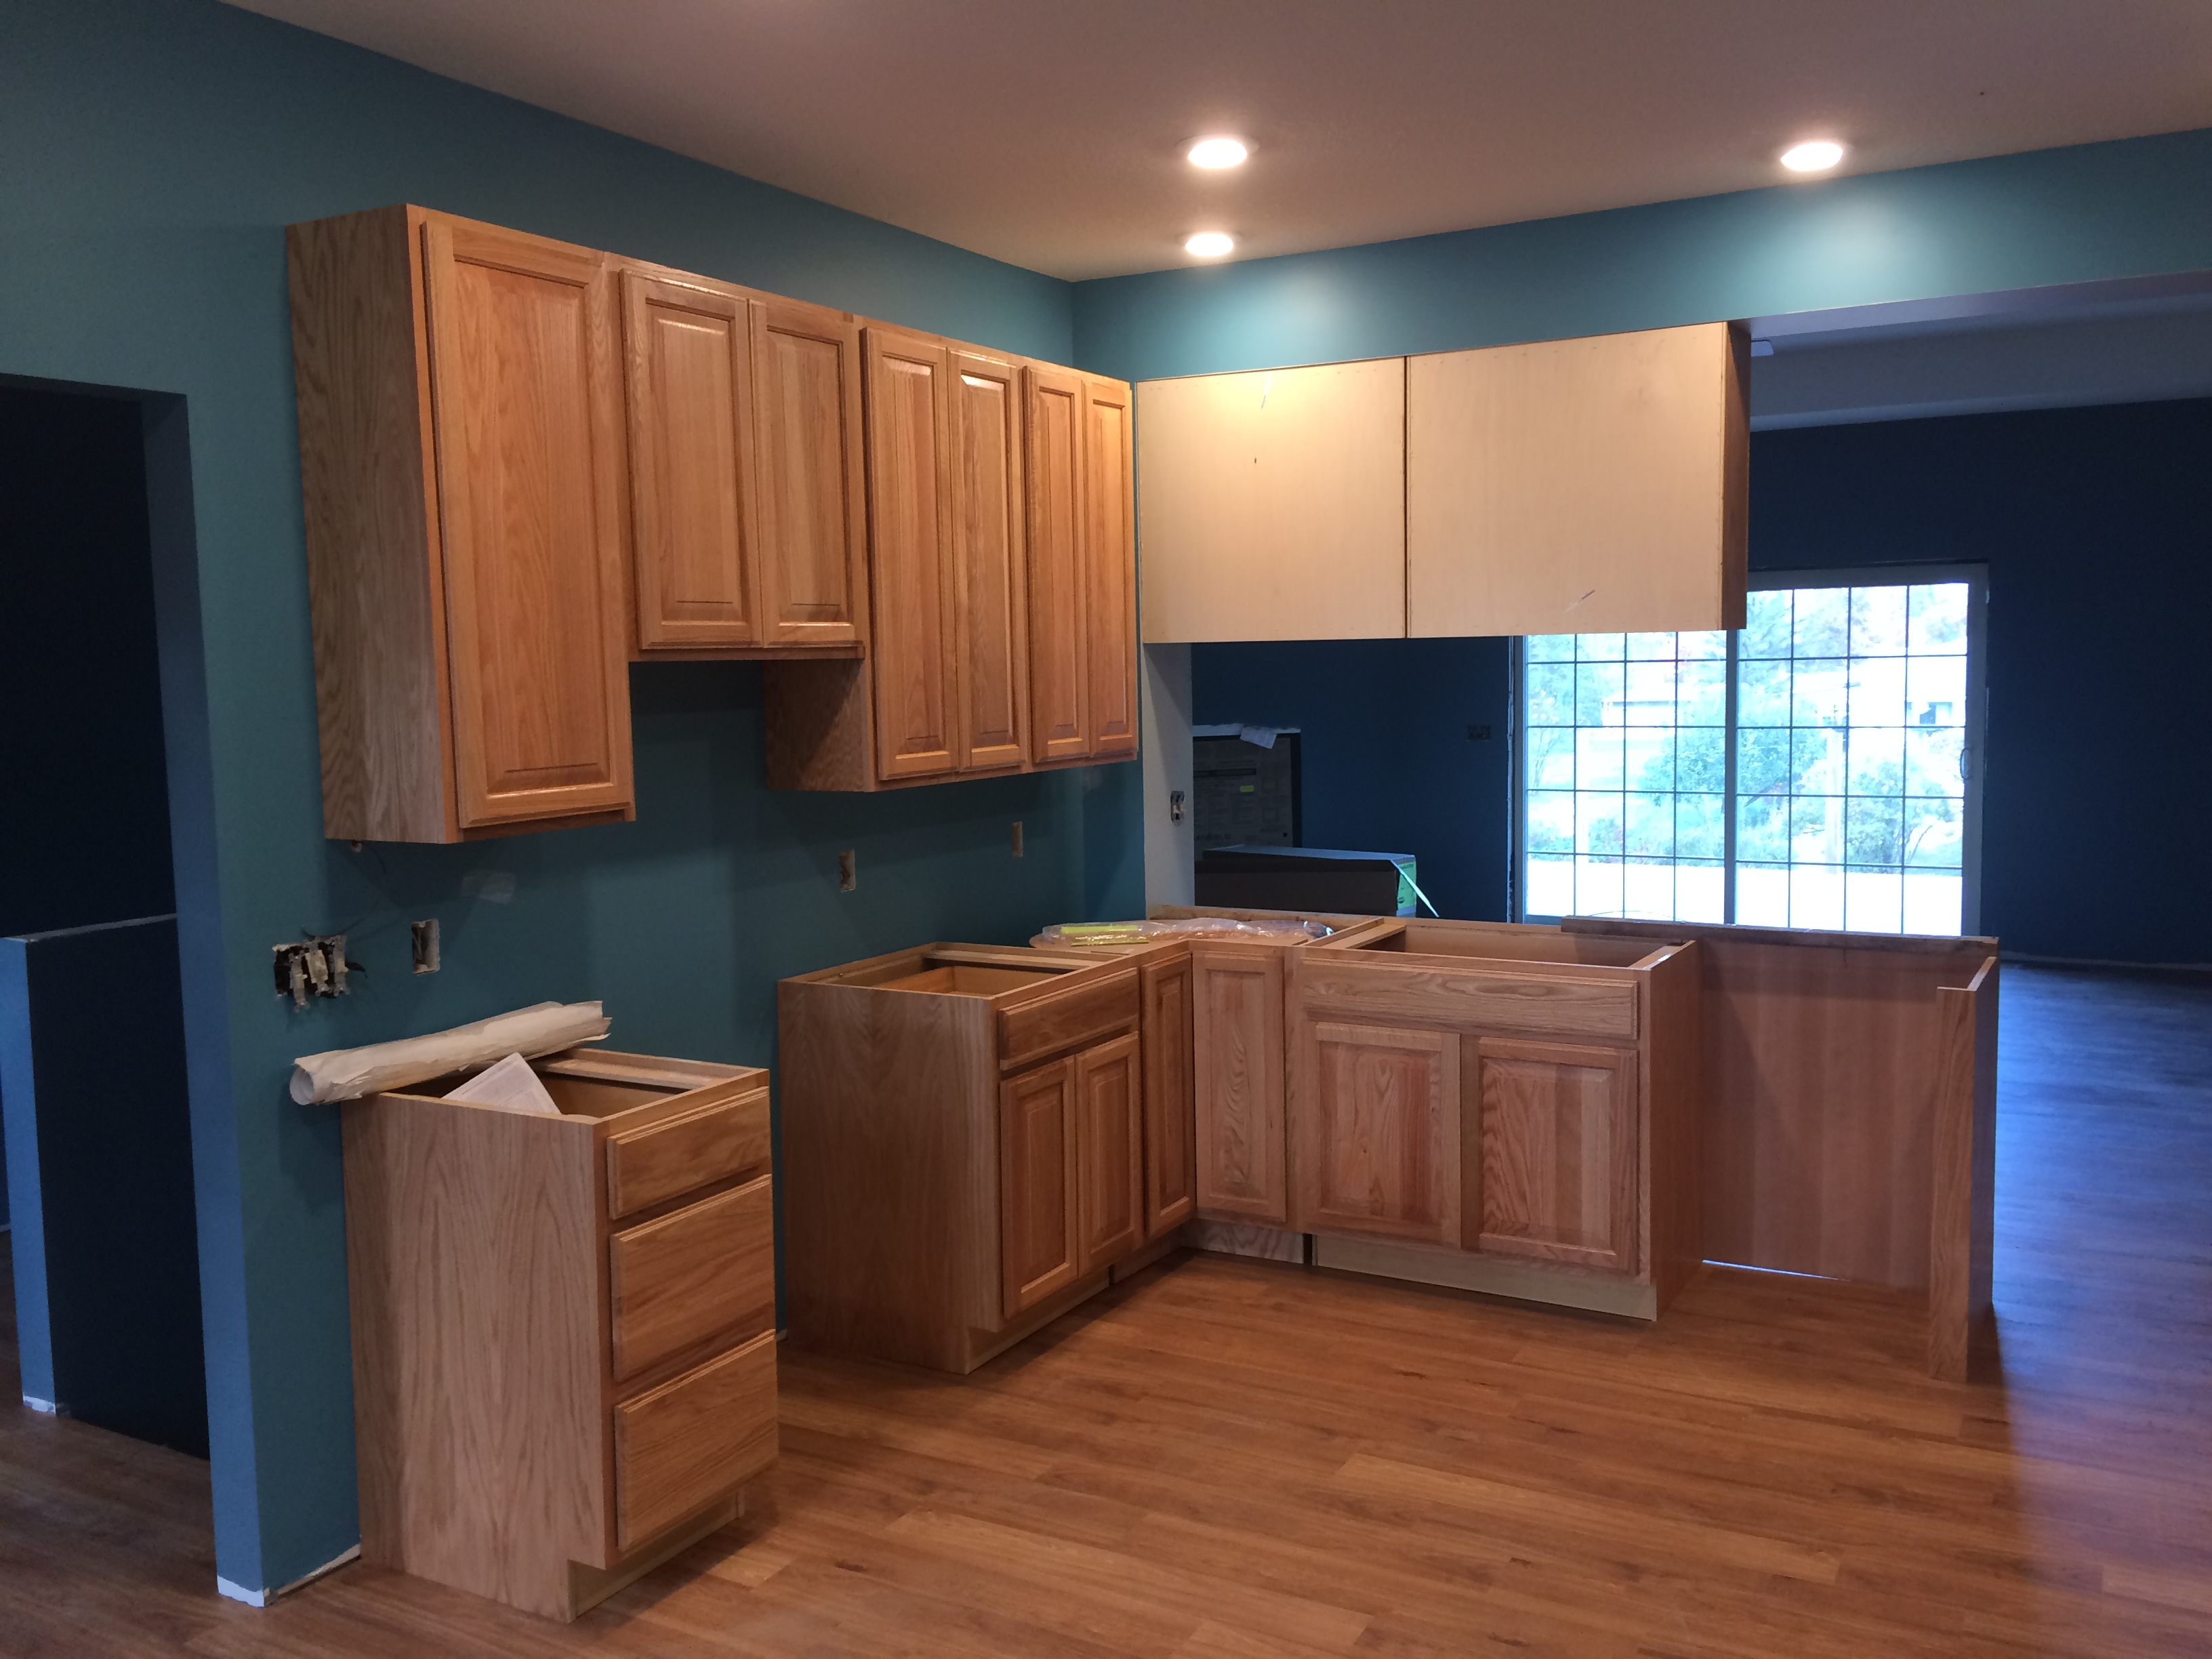 Kitchen cabinets and wood trim